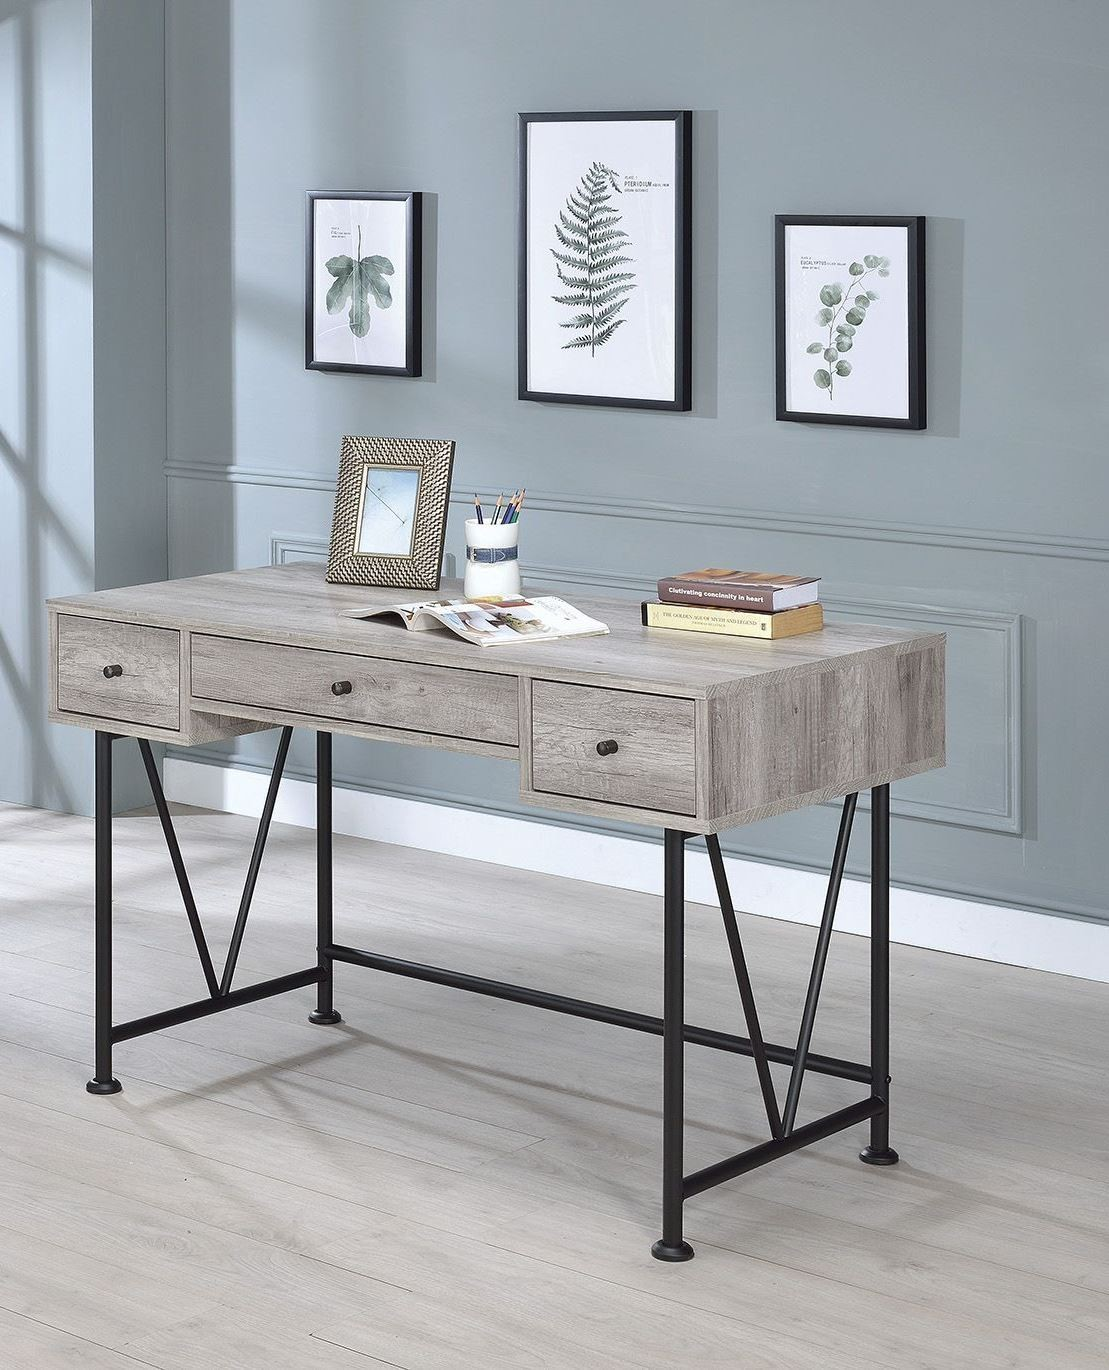 Guthrie Gray Driftwood Writing Desk From Coaster  Coleman. Drawer Gun Safe Biometric. Writing Desk With Drawer. 60 Inch Console Table. Pull Out Drawers For Kitchen Cabinets. Easter Table Decor. Desk Organizer Target. White Full Size Loft Bed With Desk. Cabinet Drawer Pulls